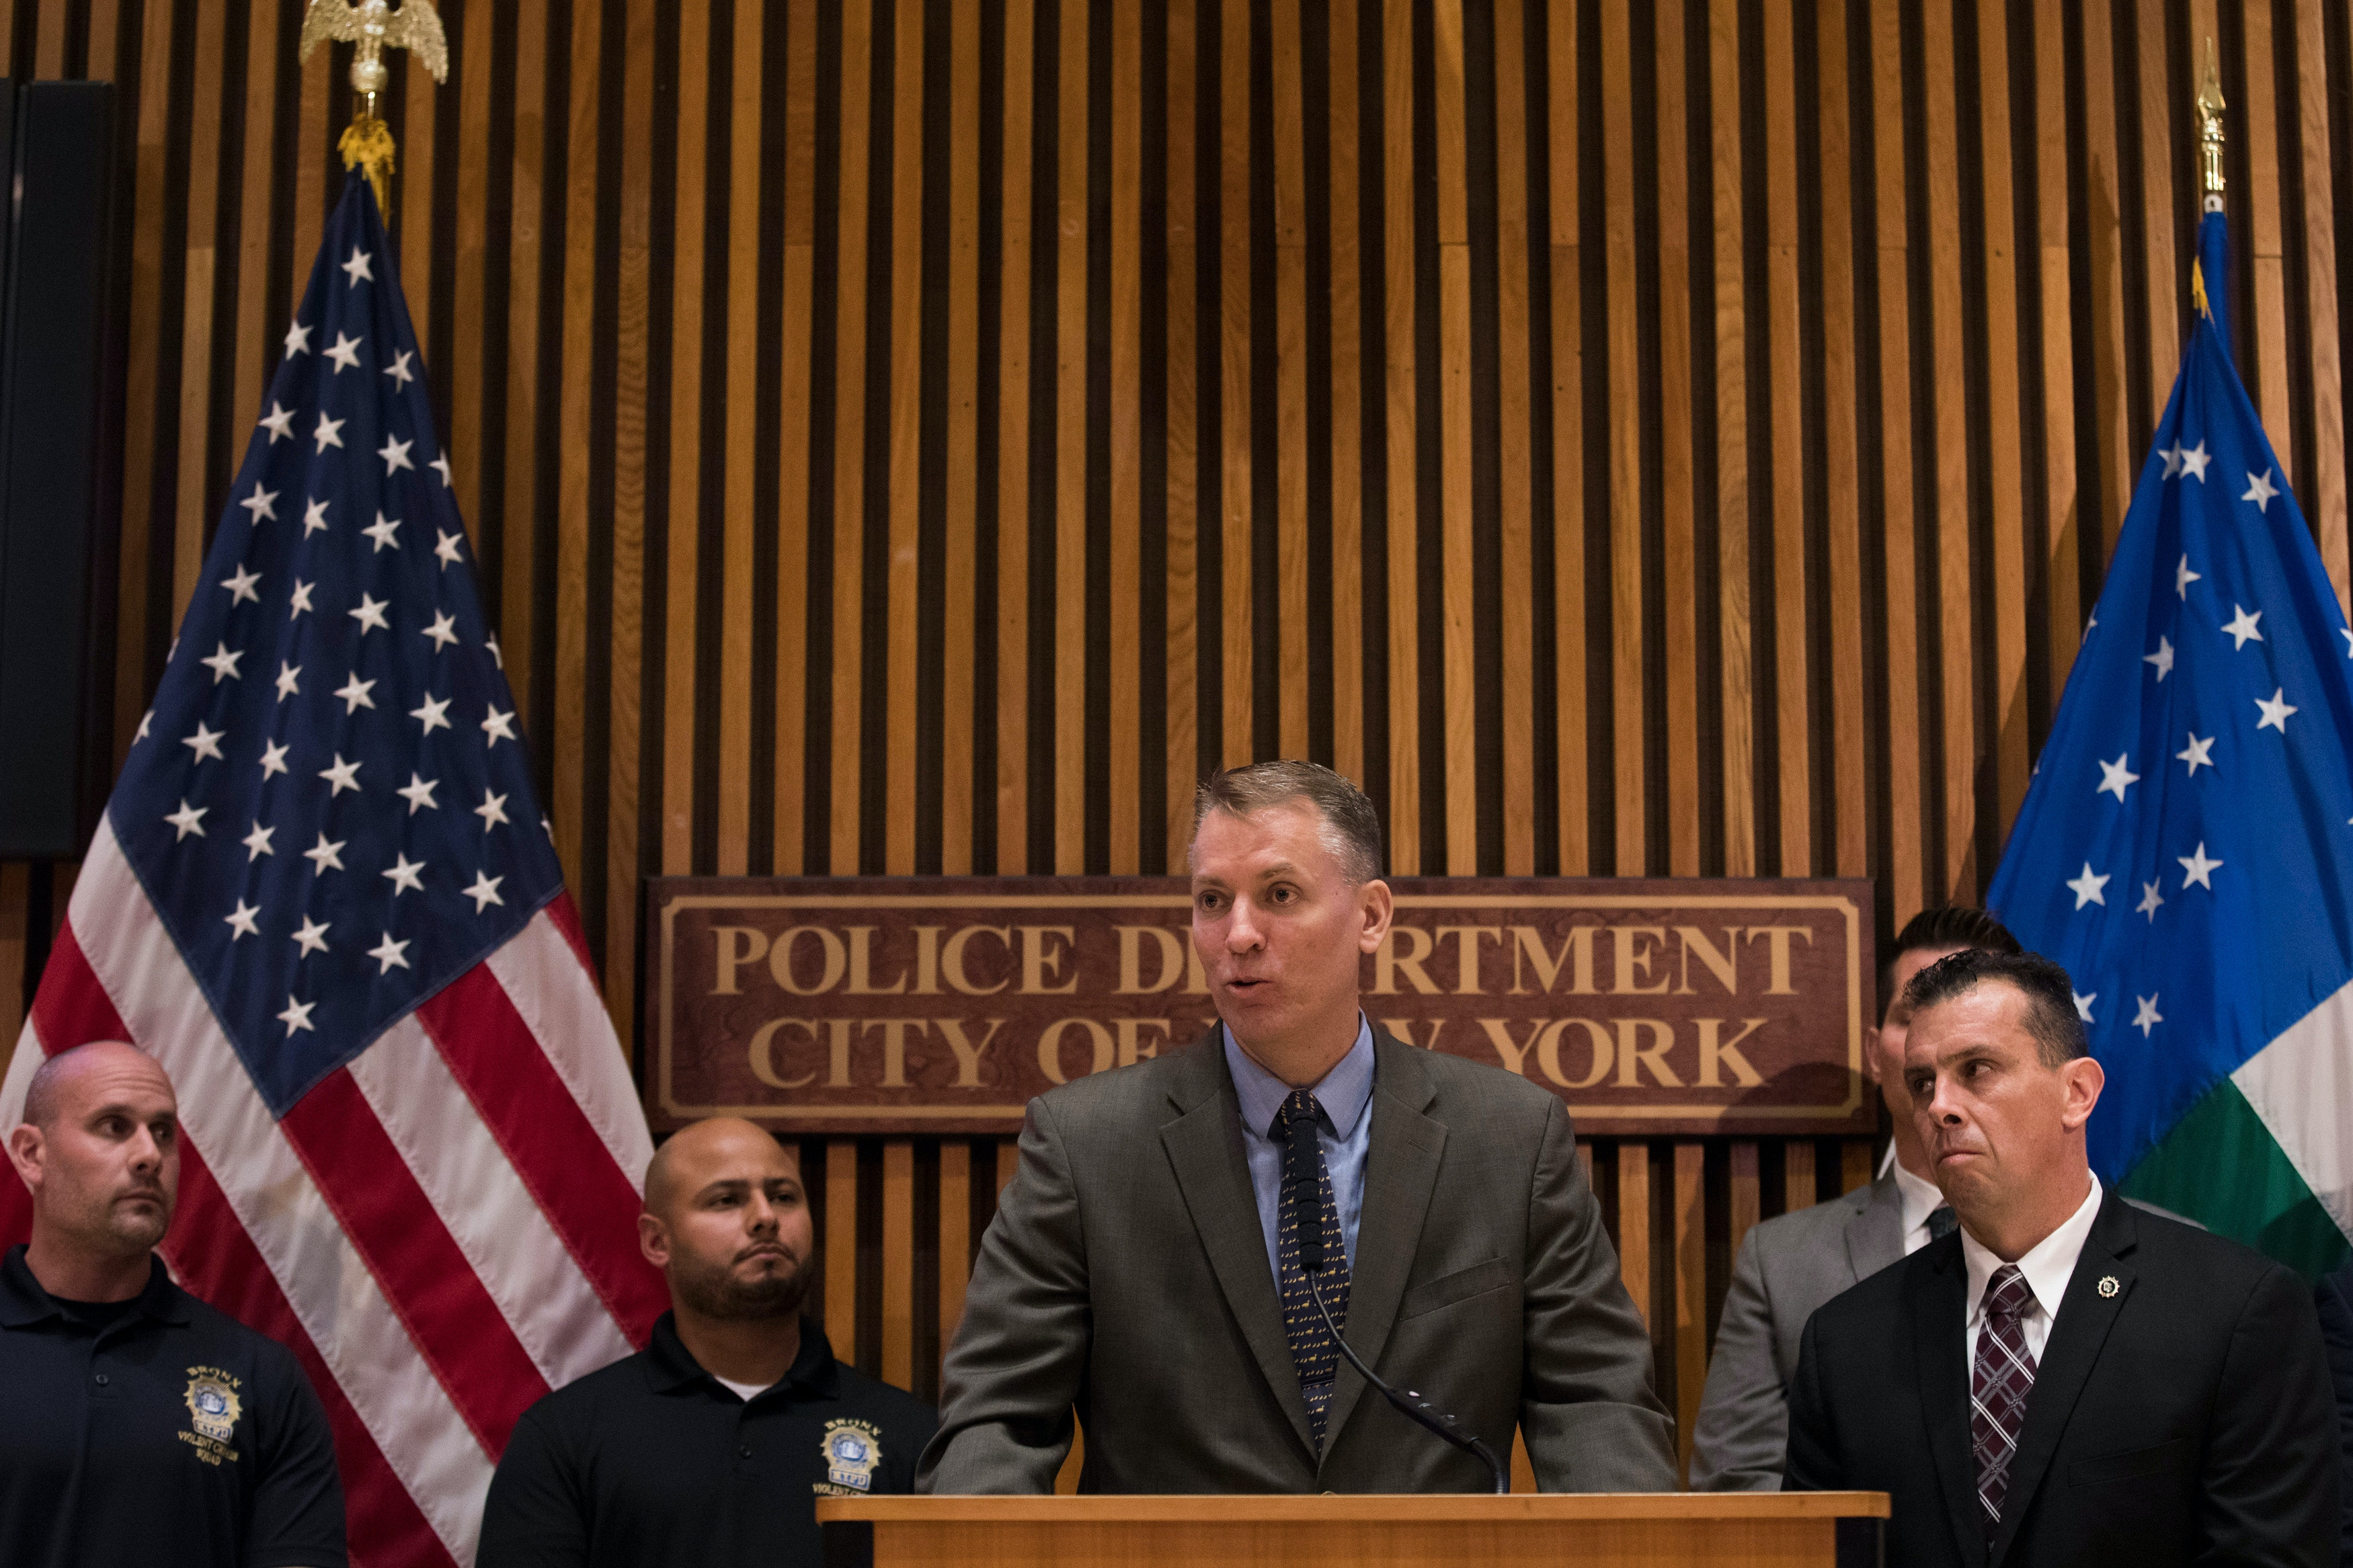 NEW YORK, NY - JUNE 27: NYPD Chief of Detectives Dermot Shea speaks during a press conference about gang violence at New York City Police Department (NYPD) headquarters, June 27, 2018 in New York City. Law enforcement officials announced the arrest of alleged members of the Bronx-based Mac Balla gang following a months-long investigation. The NYPD is also currently investigating the Trinitarios gang, who were responsible for the recent murder of a 15-year old in The Bronx.  (Photo by Drew Angerer/Getty Images)